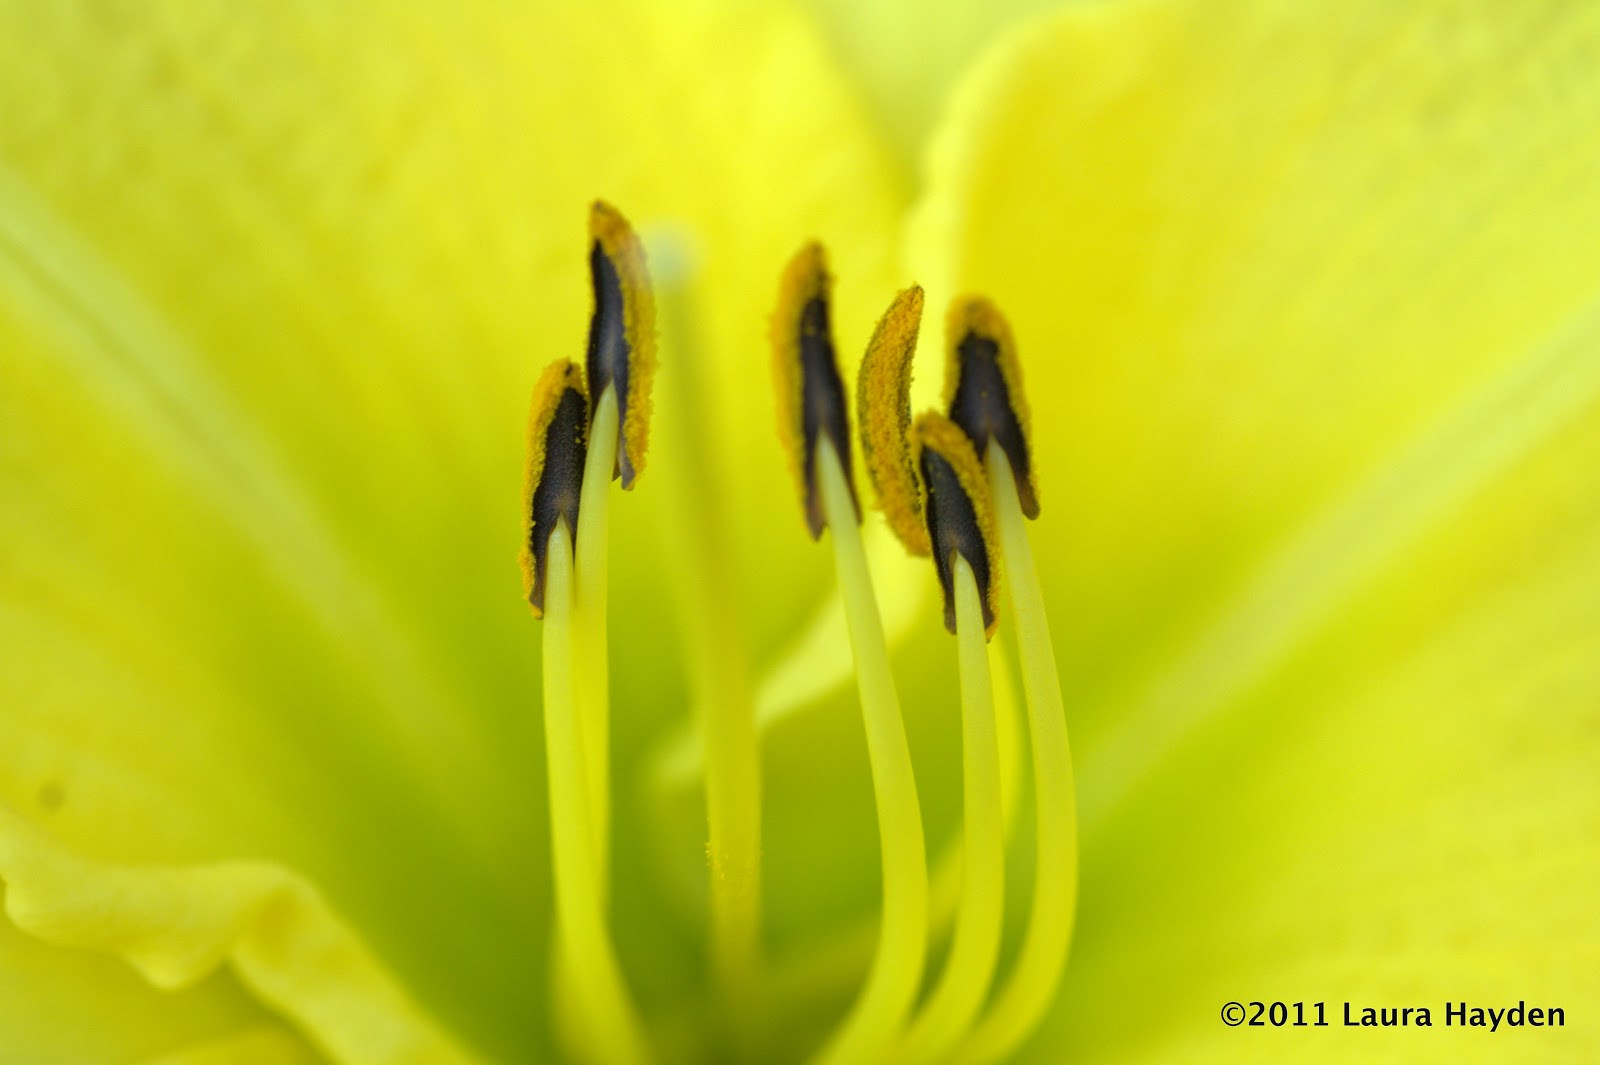 Durable gardening tetraploid tet what does tetraploid daylily the mutations that occur from the doubling of chromosomes results in the ability to breed new plants that have more admirable traits such as flower izmirmasajfo Gallery